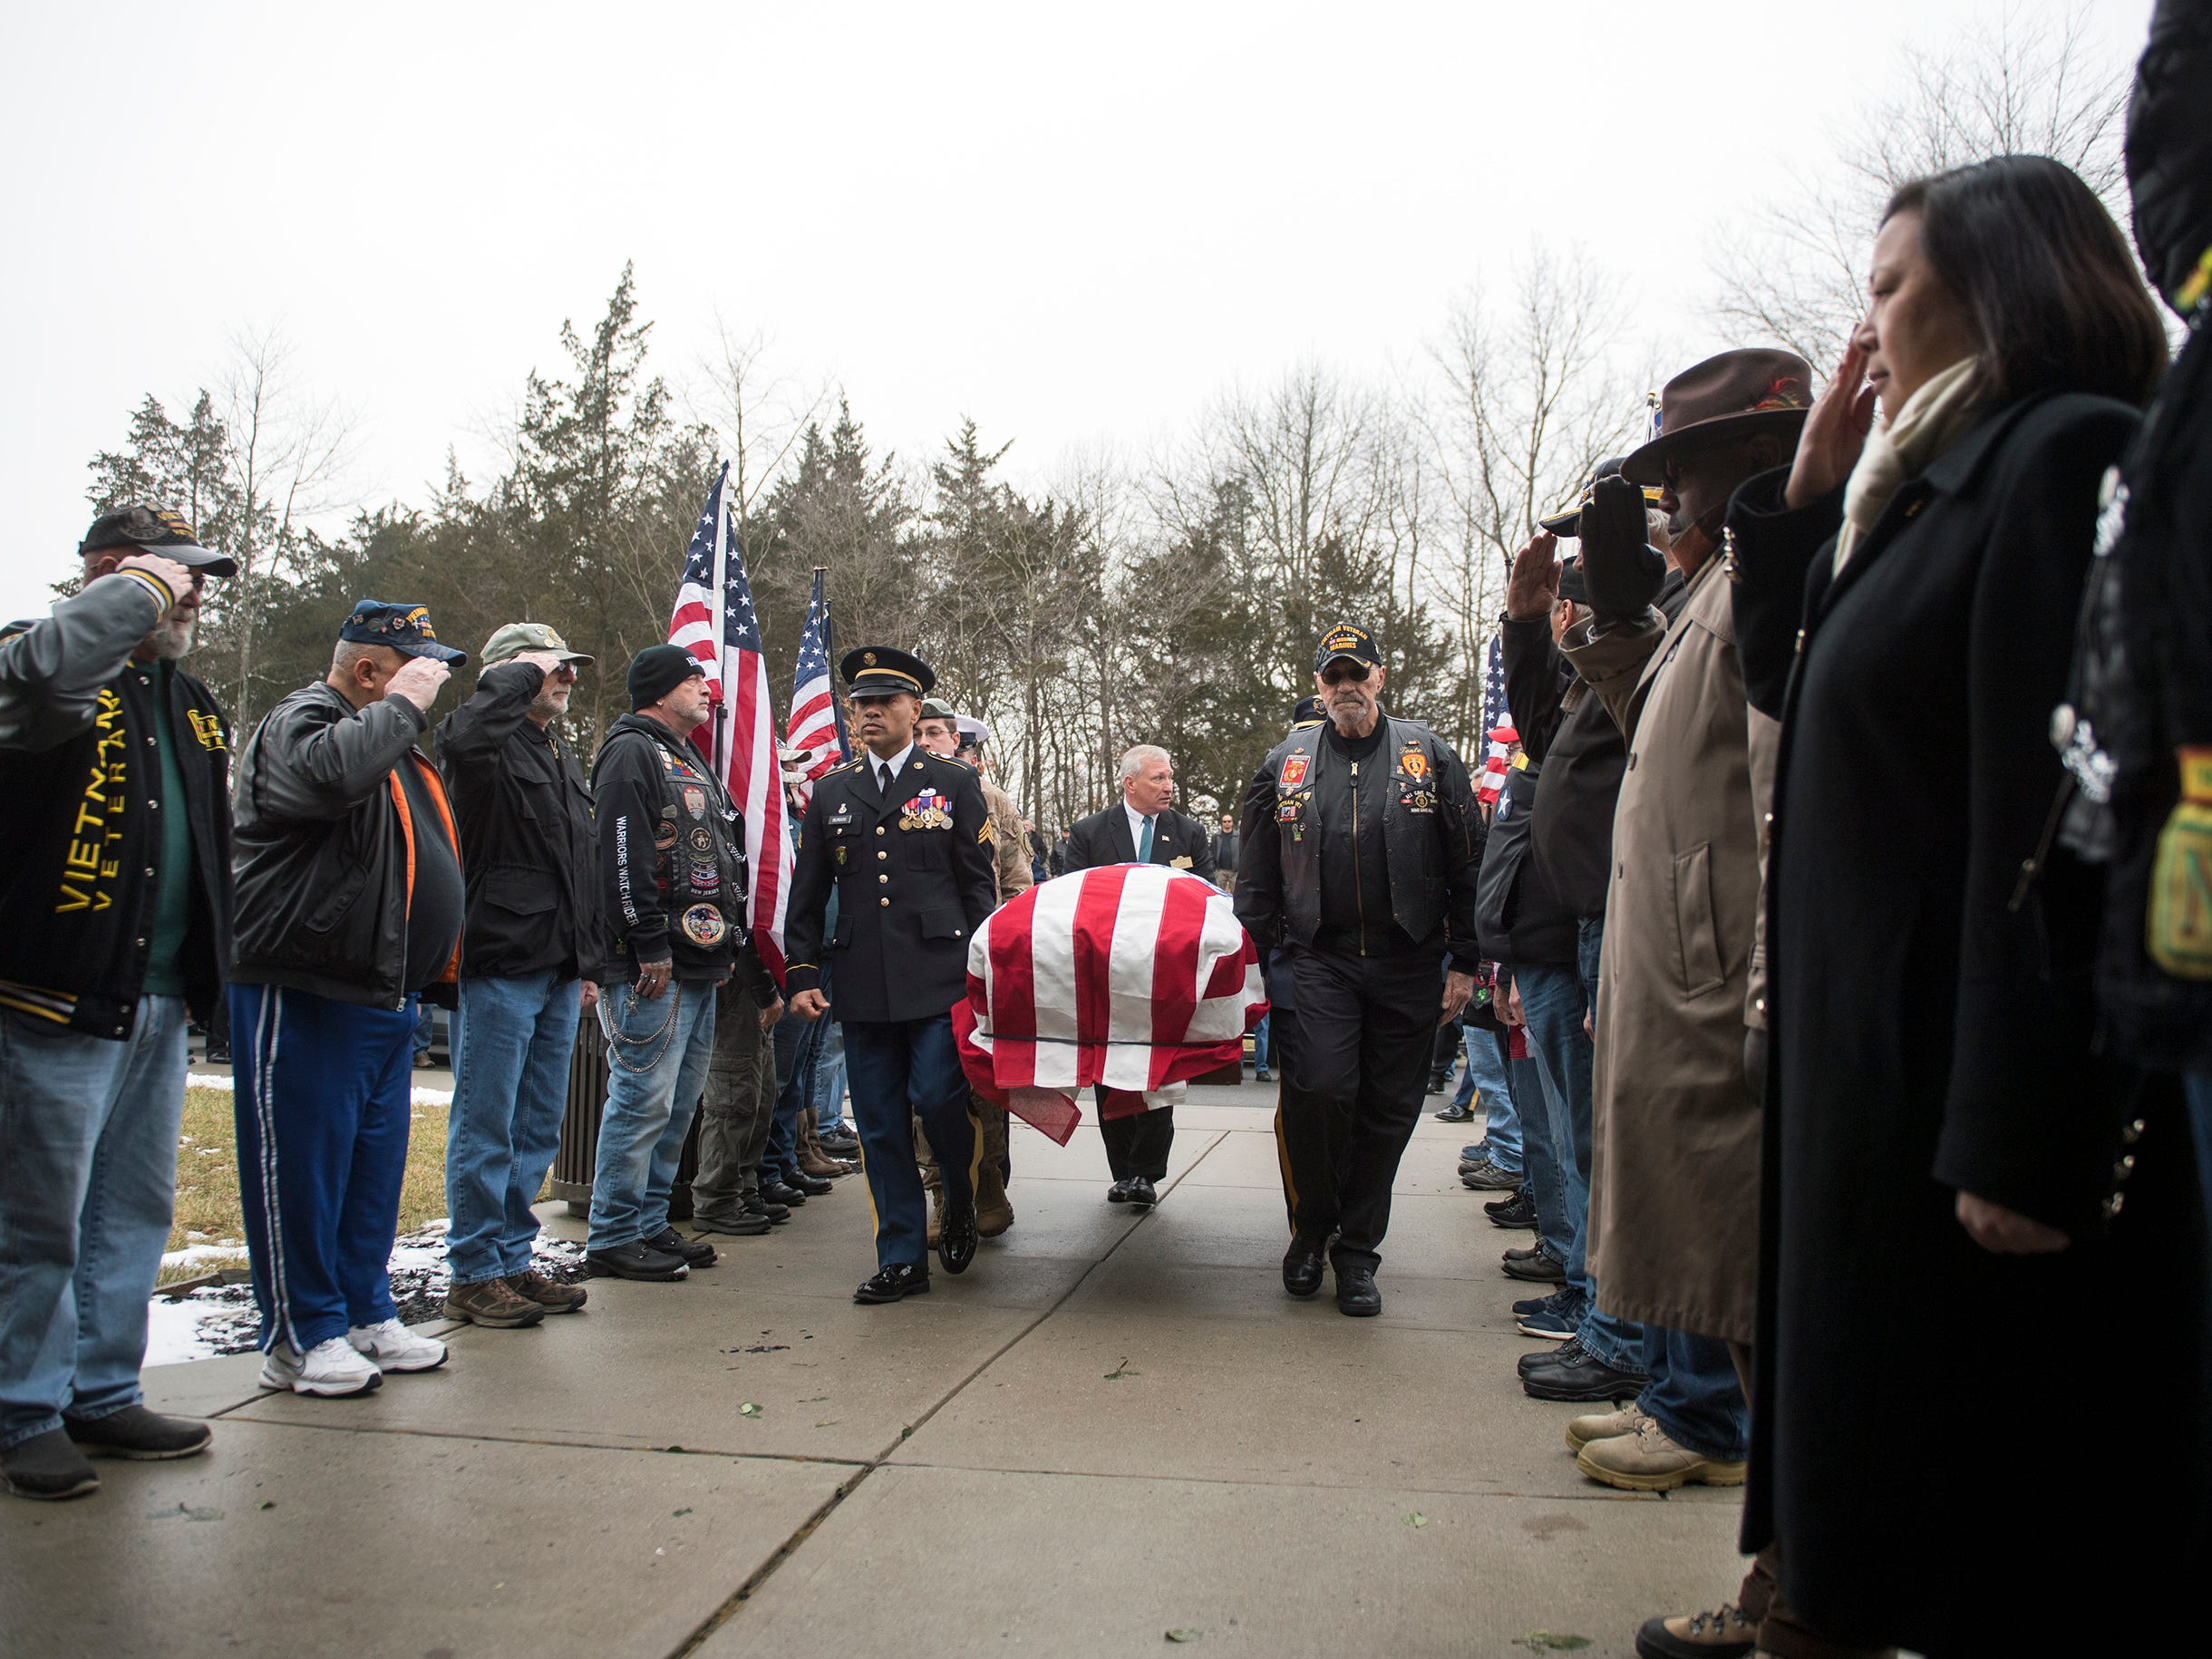 Pallbearers carry the casket of Vietnam veteran Peter Turnpu as several hundreds gather for a funeral Friday, Jan. 18, 2019 in Wrightstown, N.J.